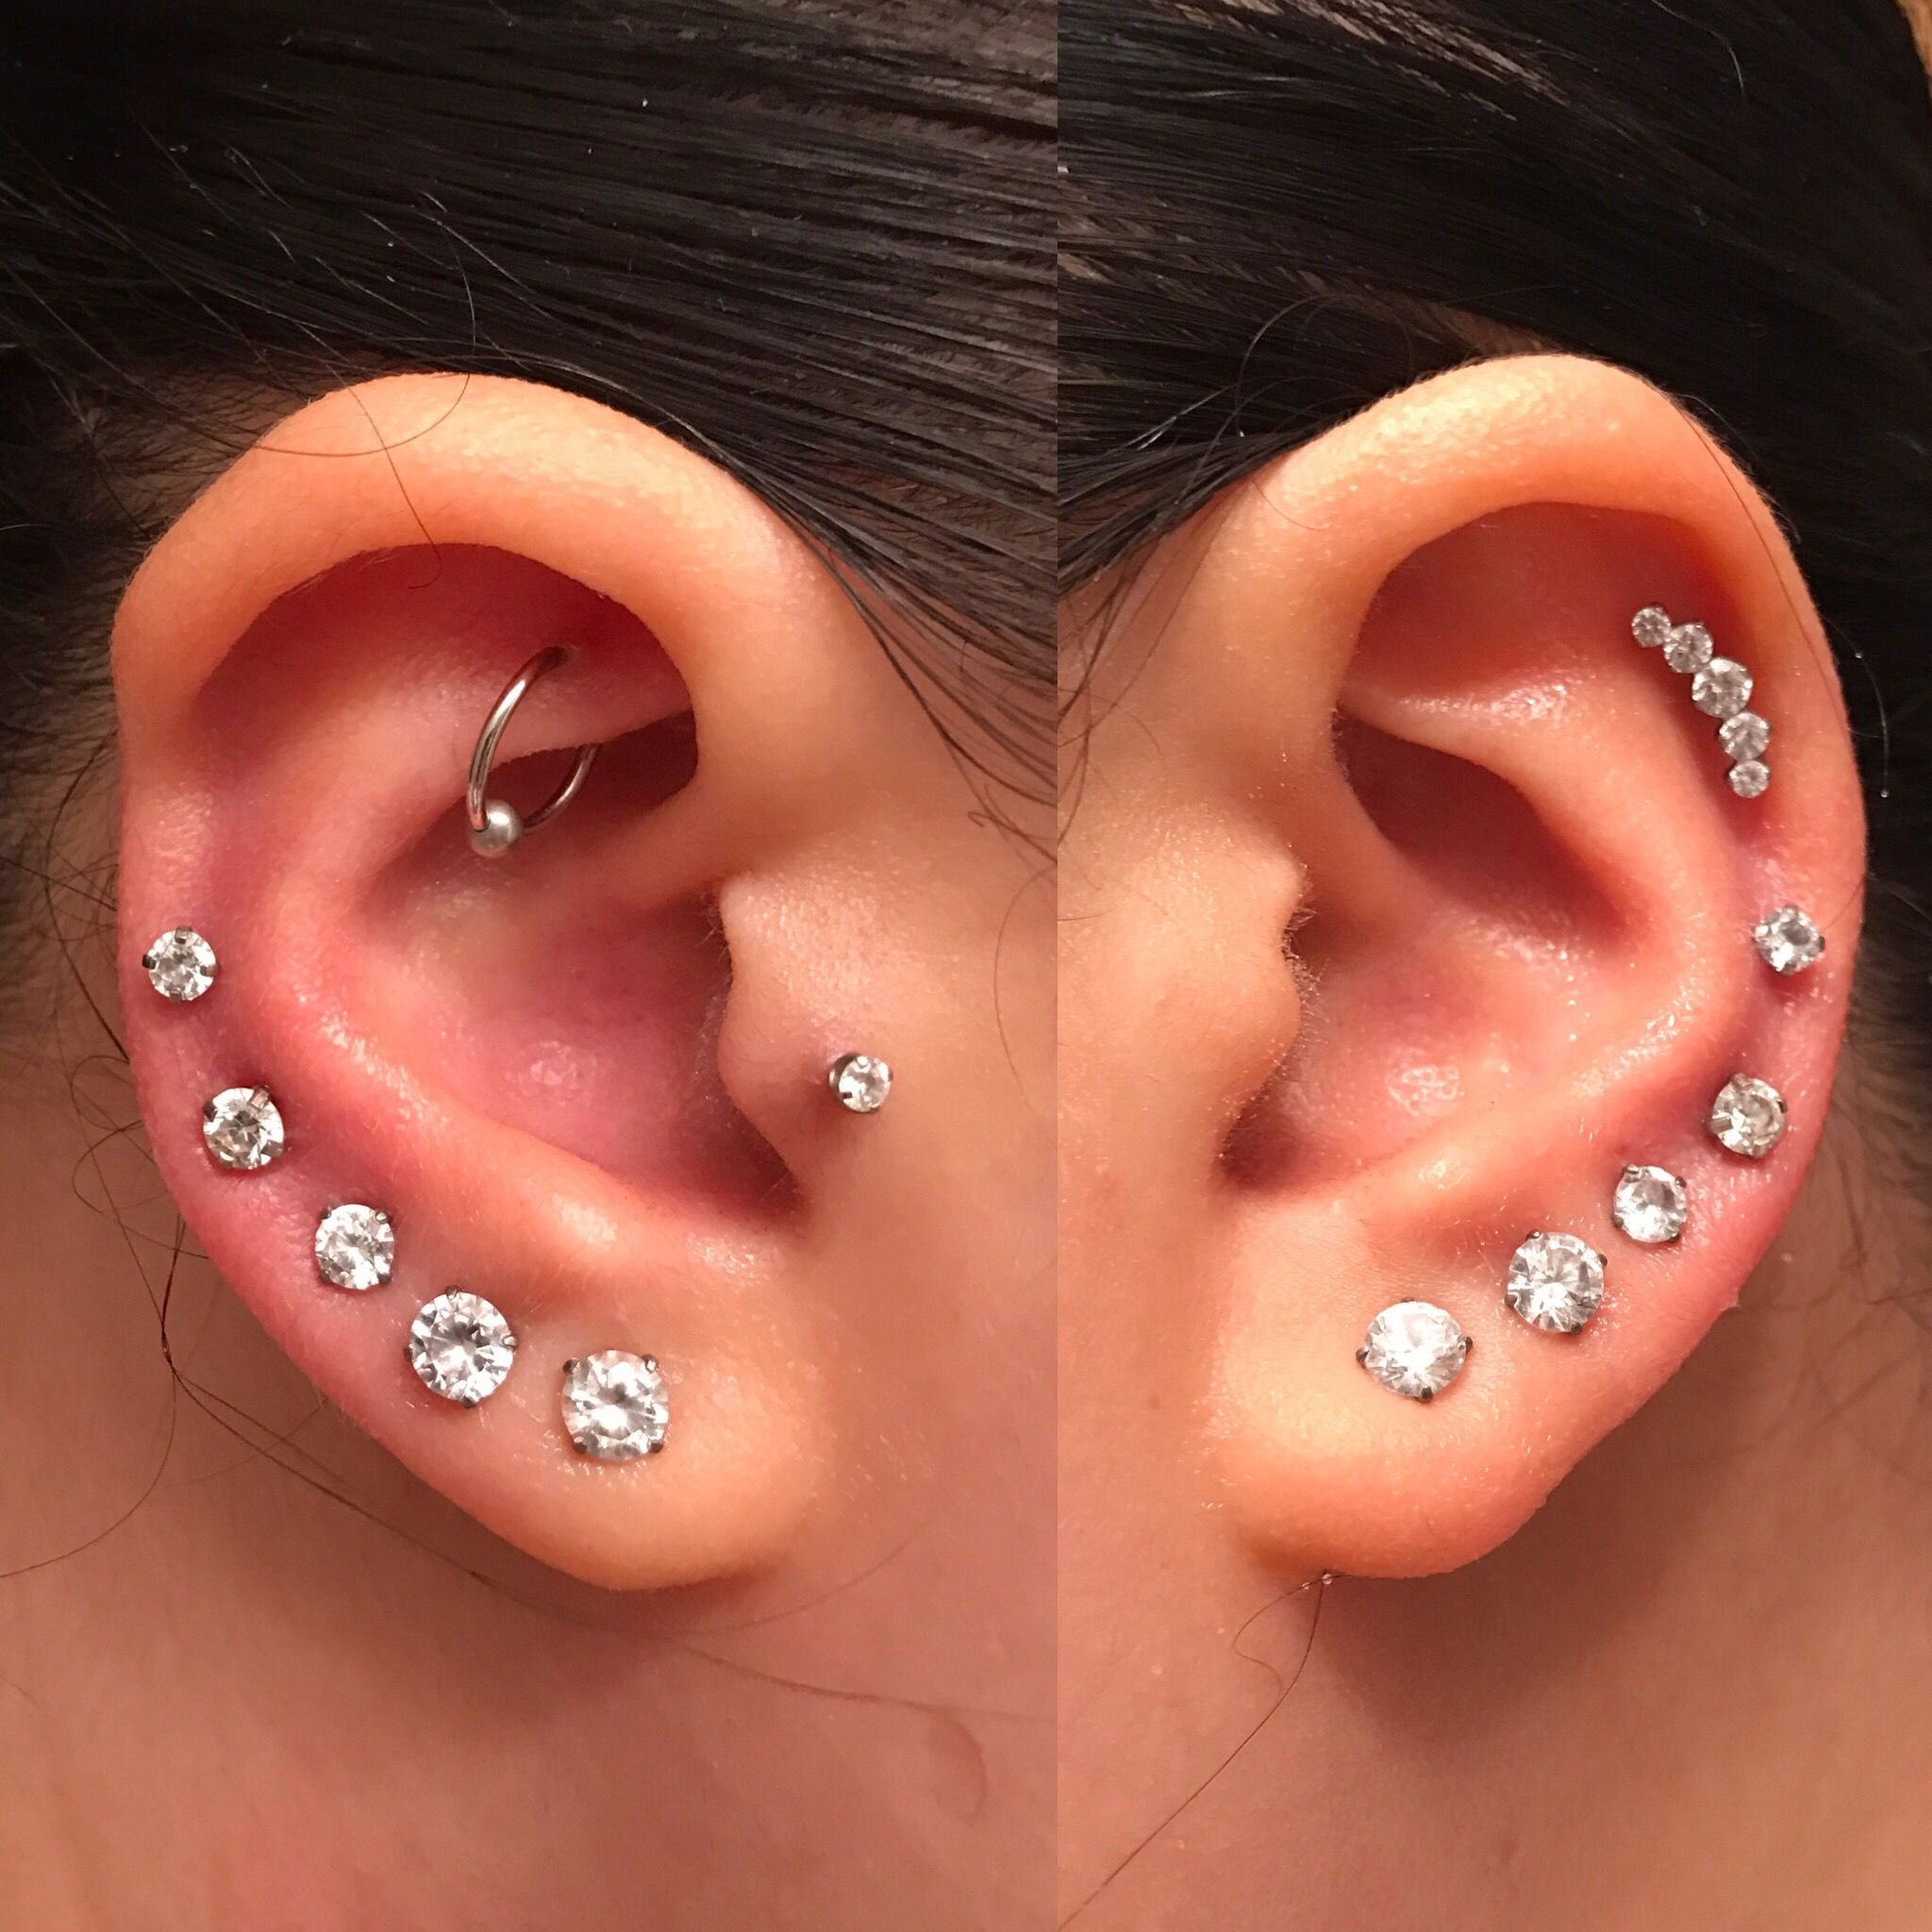 hight resolution of i love my ear piercings rook tragus graduate lobe mid helix upper helix